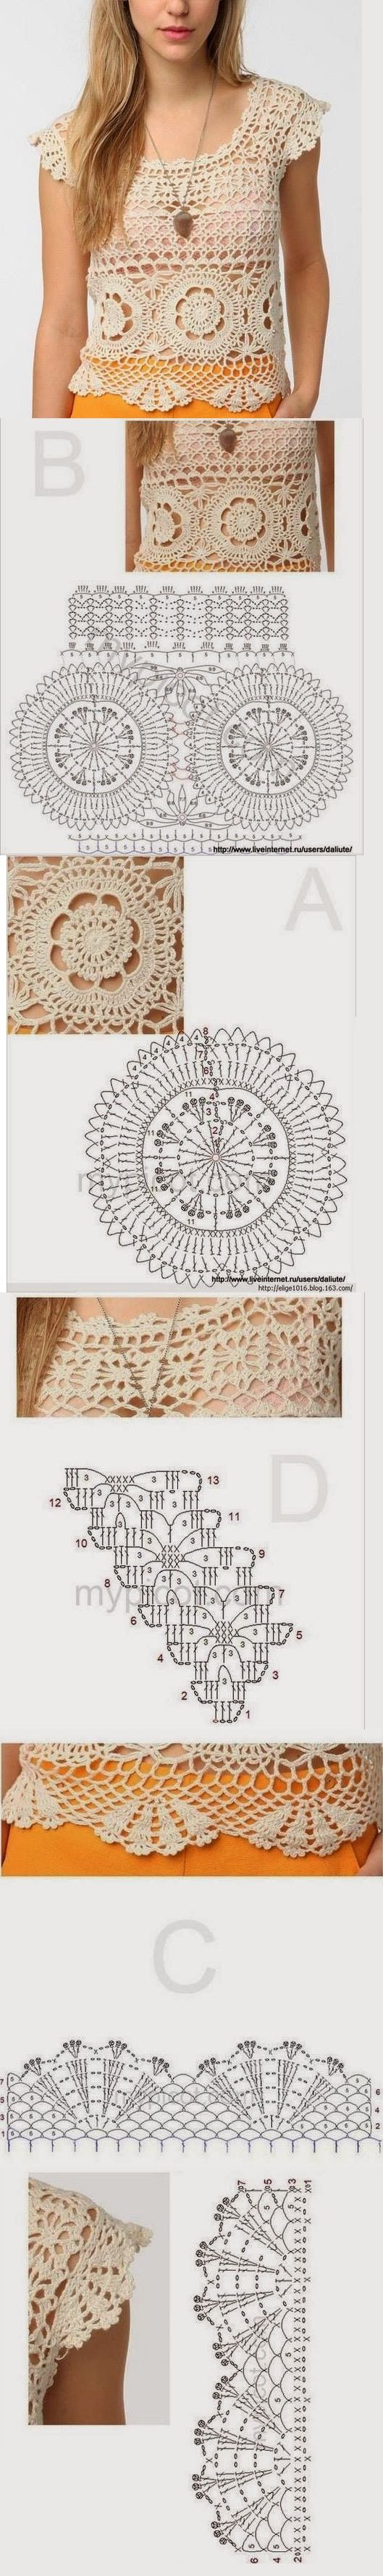 97 best womens clothing images on pinterest boleros crochet picture onlyfloral crochet motif bankloansurffo Images